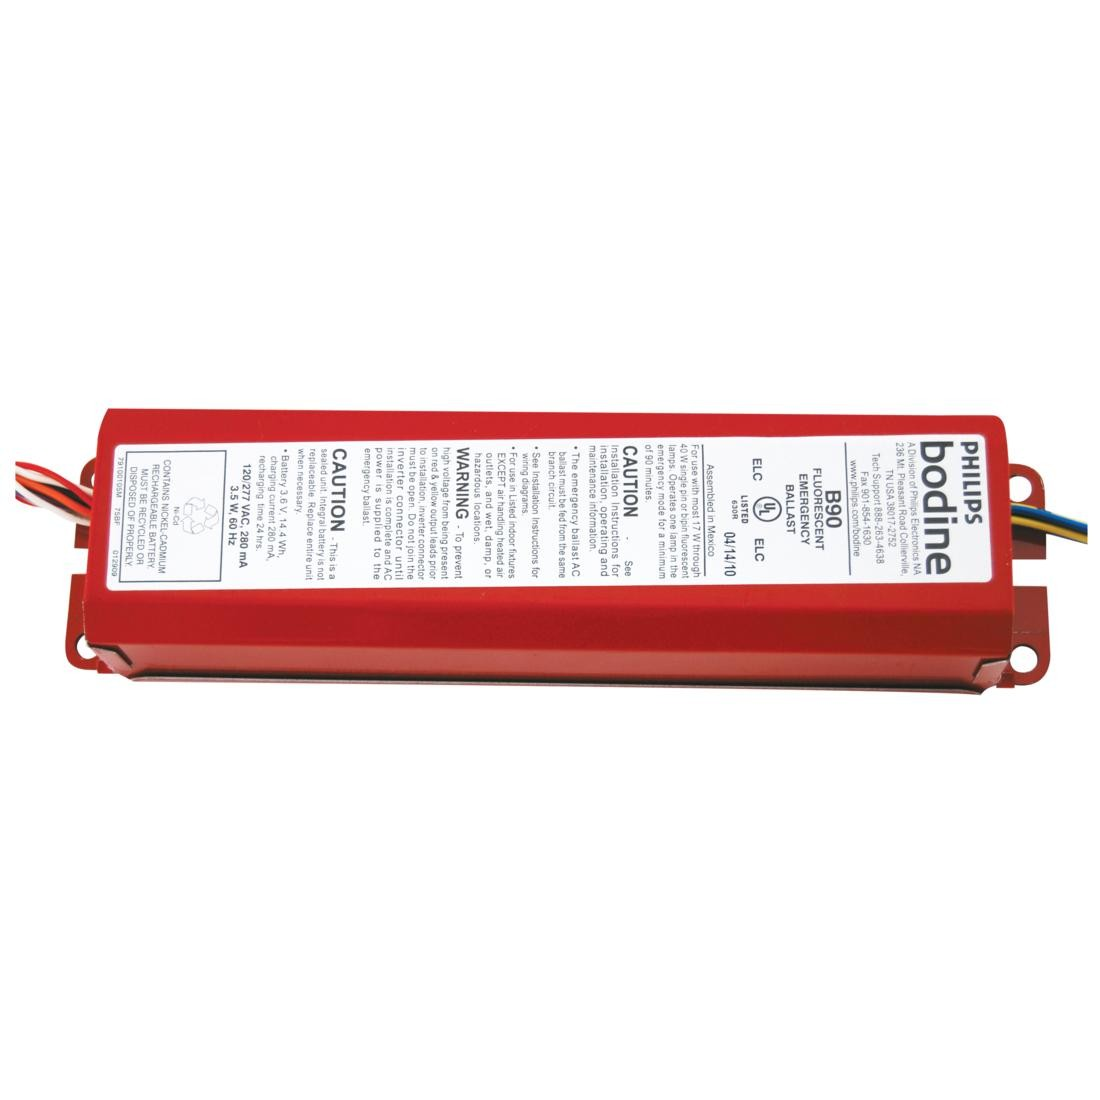 WPCFL_BAL_EMERG_B90_BODINE fluorescent emergency back up batteries ballasts bodine b90 emergency ballast wiring diagram at gsmportal.co